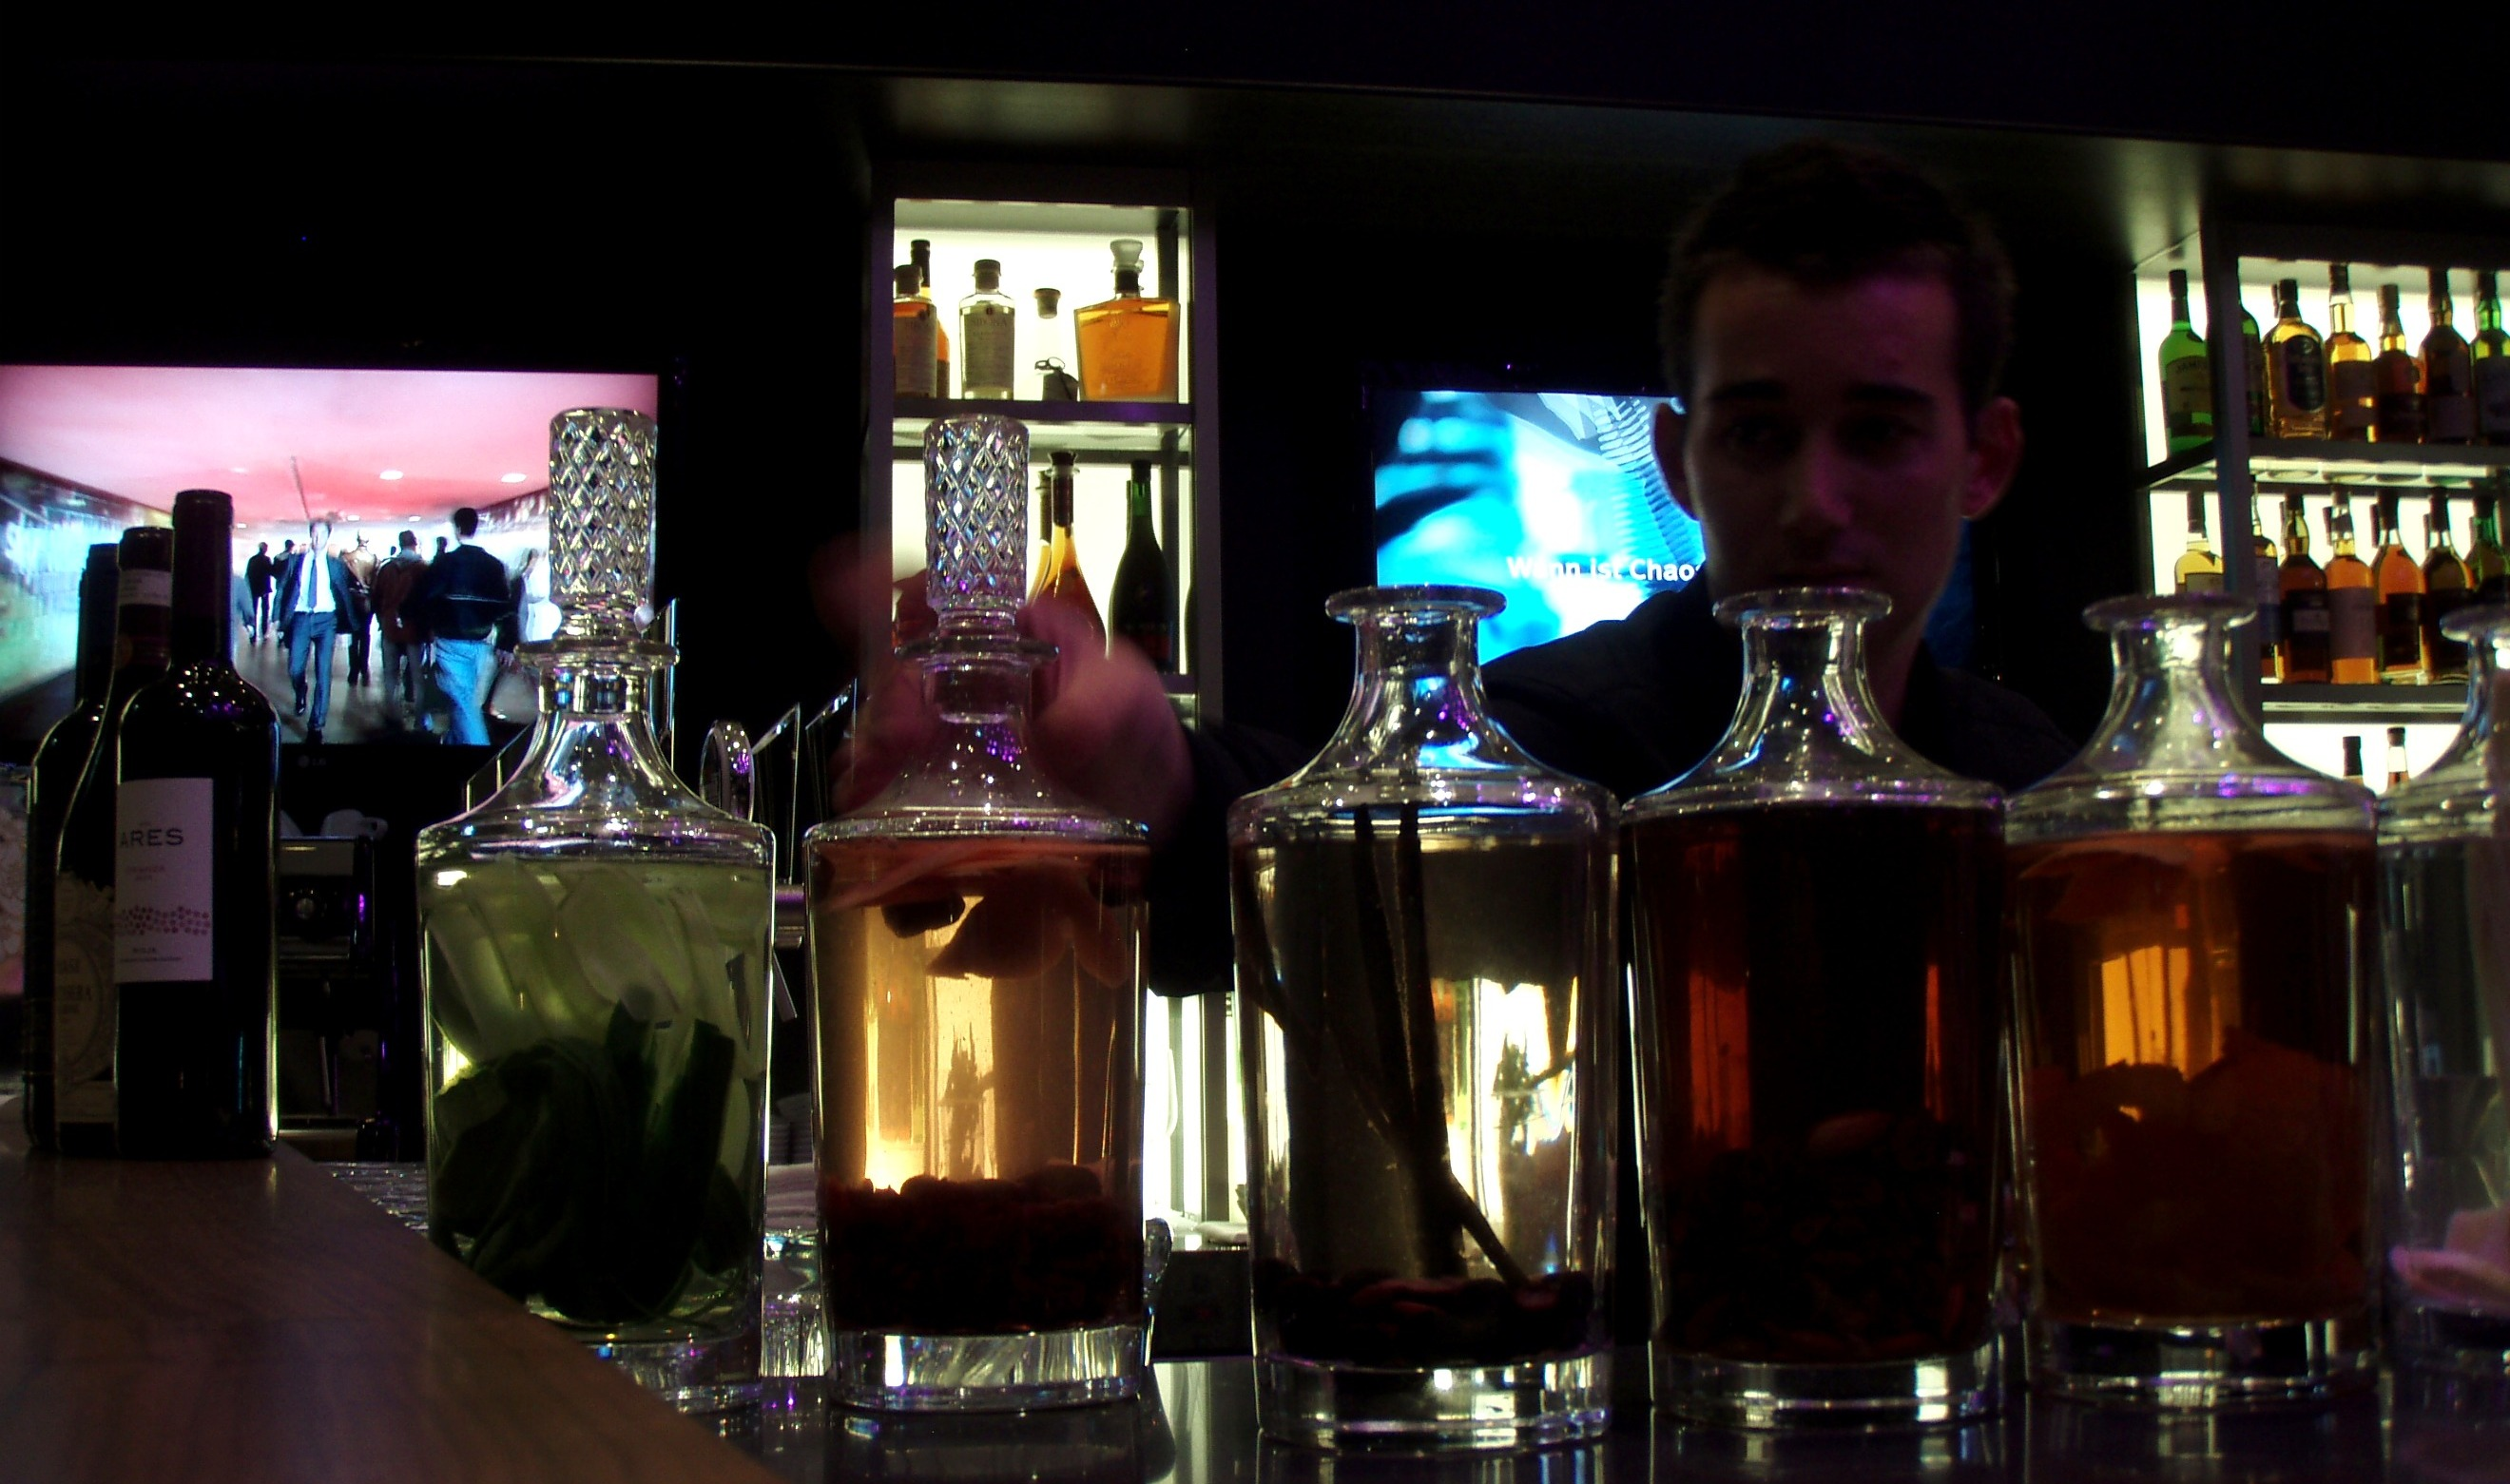 Renaissance Zurich Tower Hotel's Barman with stylish colorful bottles